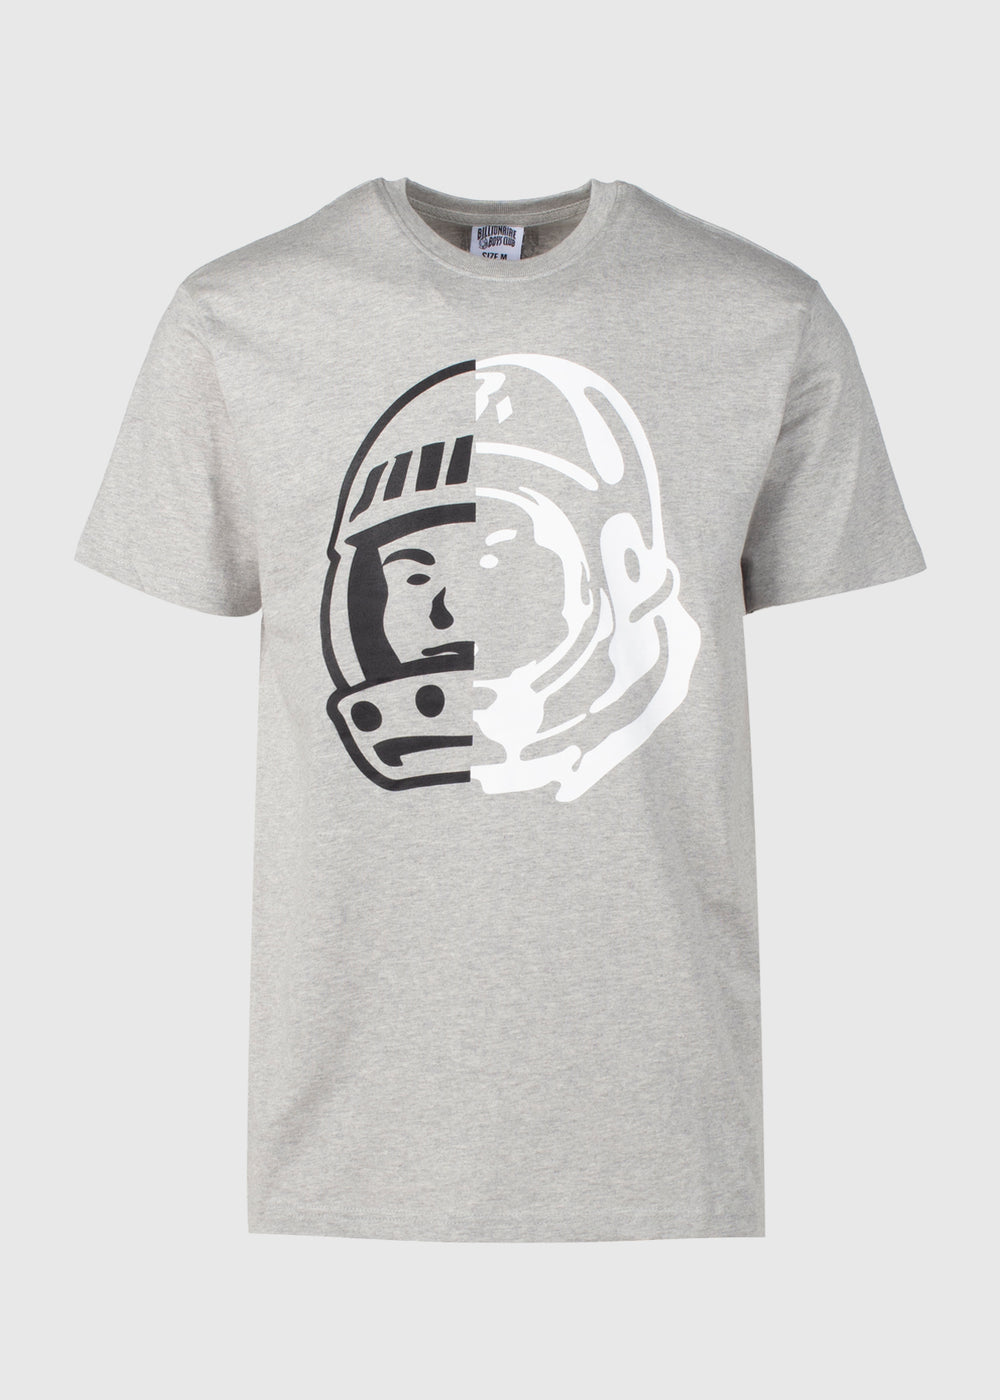 billionaire-boys-club-spacewalk-ss-tee-891-6207-gry-gry-1